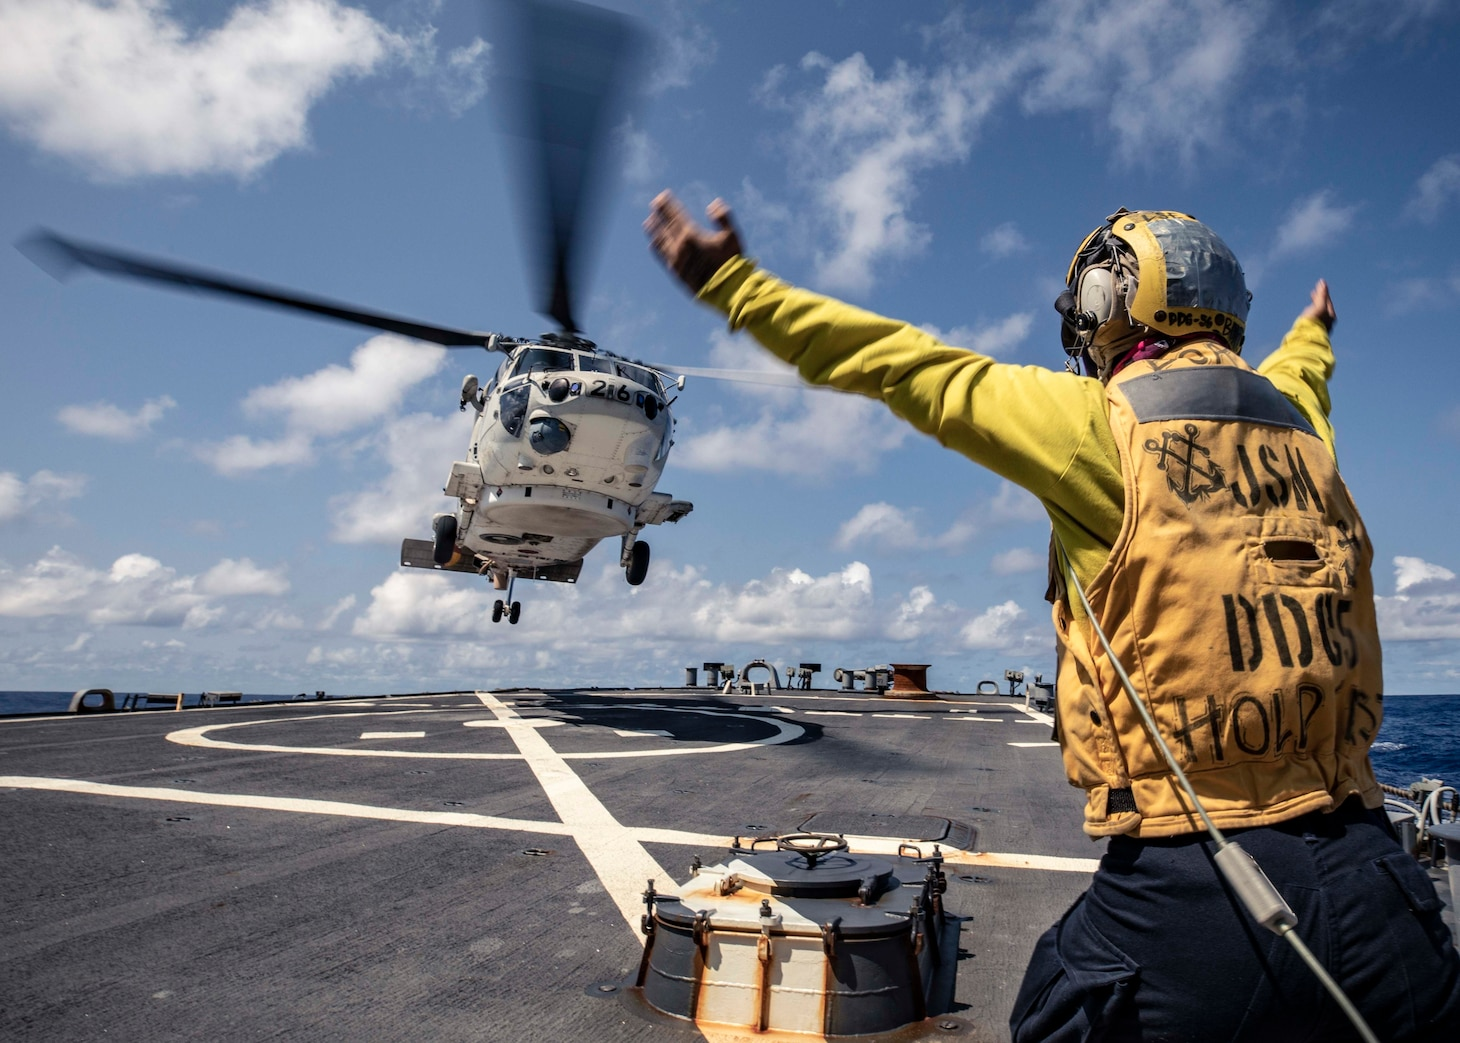 210304-N-HI376-1163 PHILIPPINE SEA (March 4, 2021) -  Boatswain's Mate 3rd Class Zachary Kai signals to a Japan Maritime Self-Defense Force (JMSDF) SH-60 Seahawk assigned to the JS Ise (DDH 182) on the flight deck of the Arleigh Burke-class guided-missile destroyer USS John S. McCain (DDG 56) during the annual U.S.-Japan Bilateral Advanced Warfighting Training exercise. BAWT focuses on joint training and interoperability of coalition forces, and enables real-world proficiency and readiness in response to any contingency. (U.S. Navy photo by Mass Communication Specialist 1st Class Jeremy Graham)